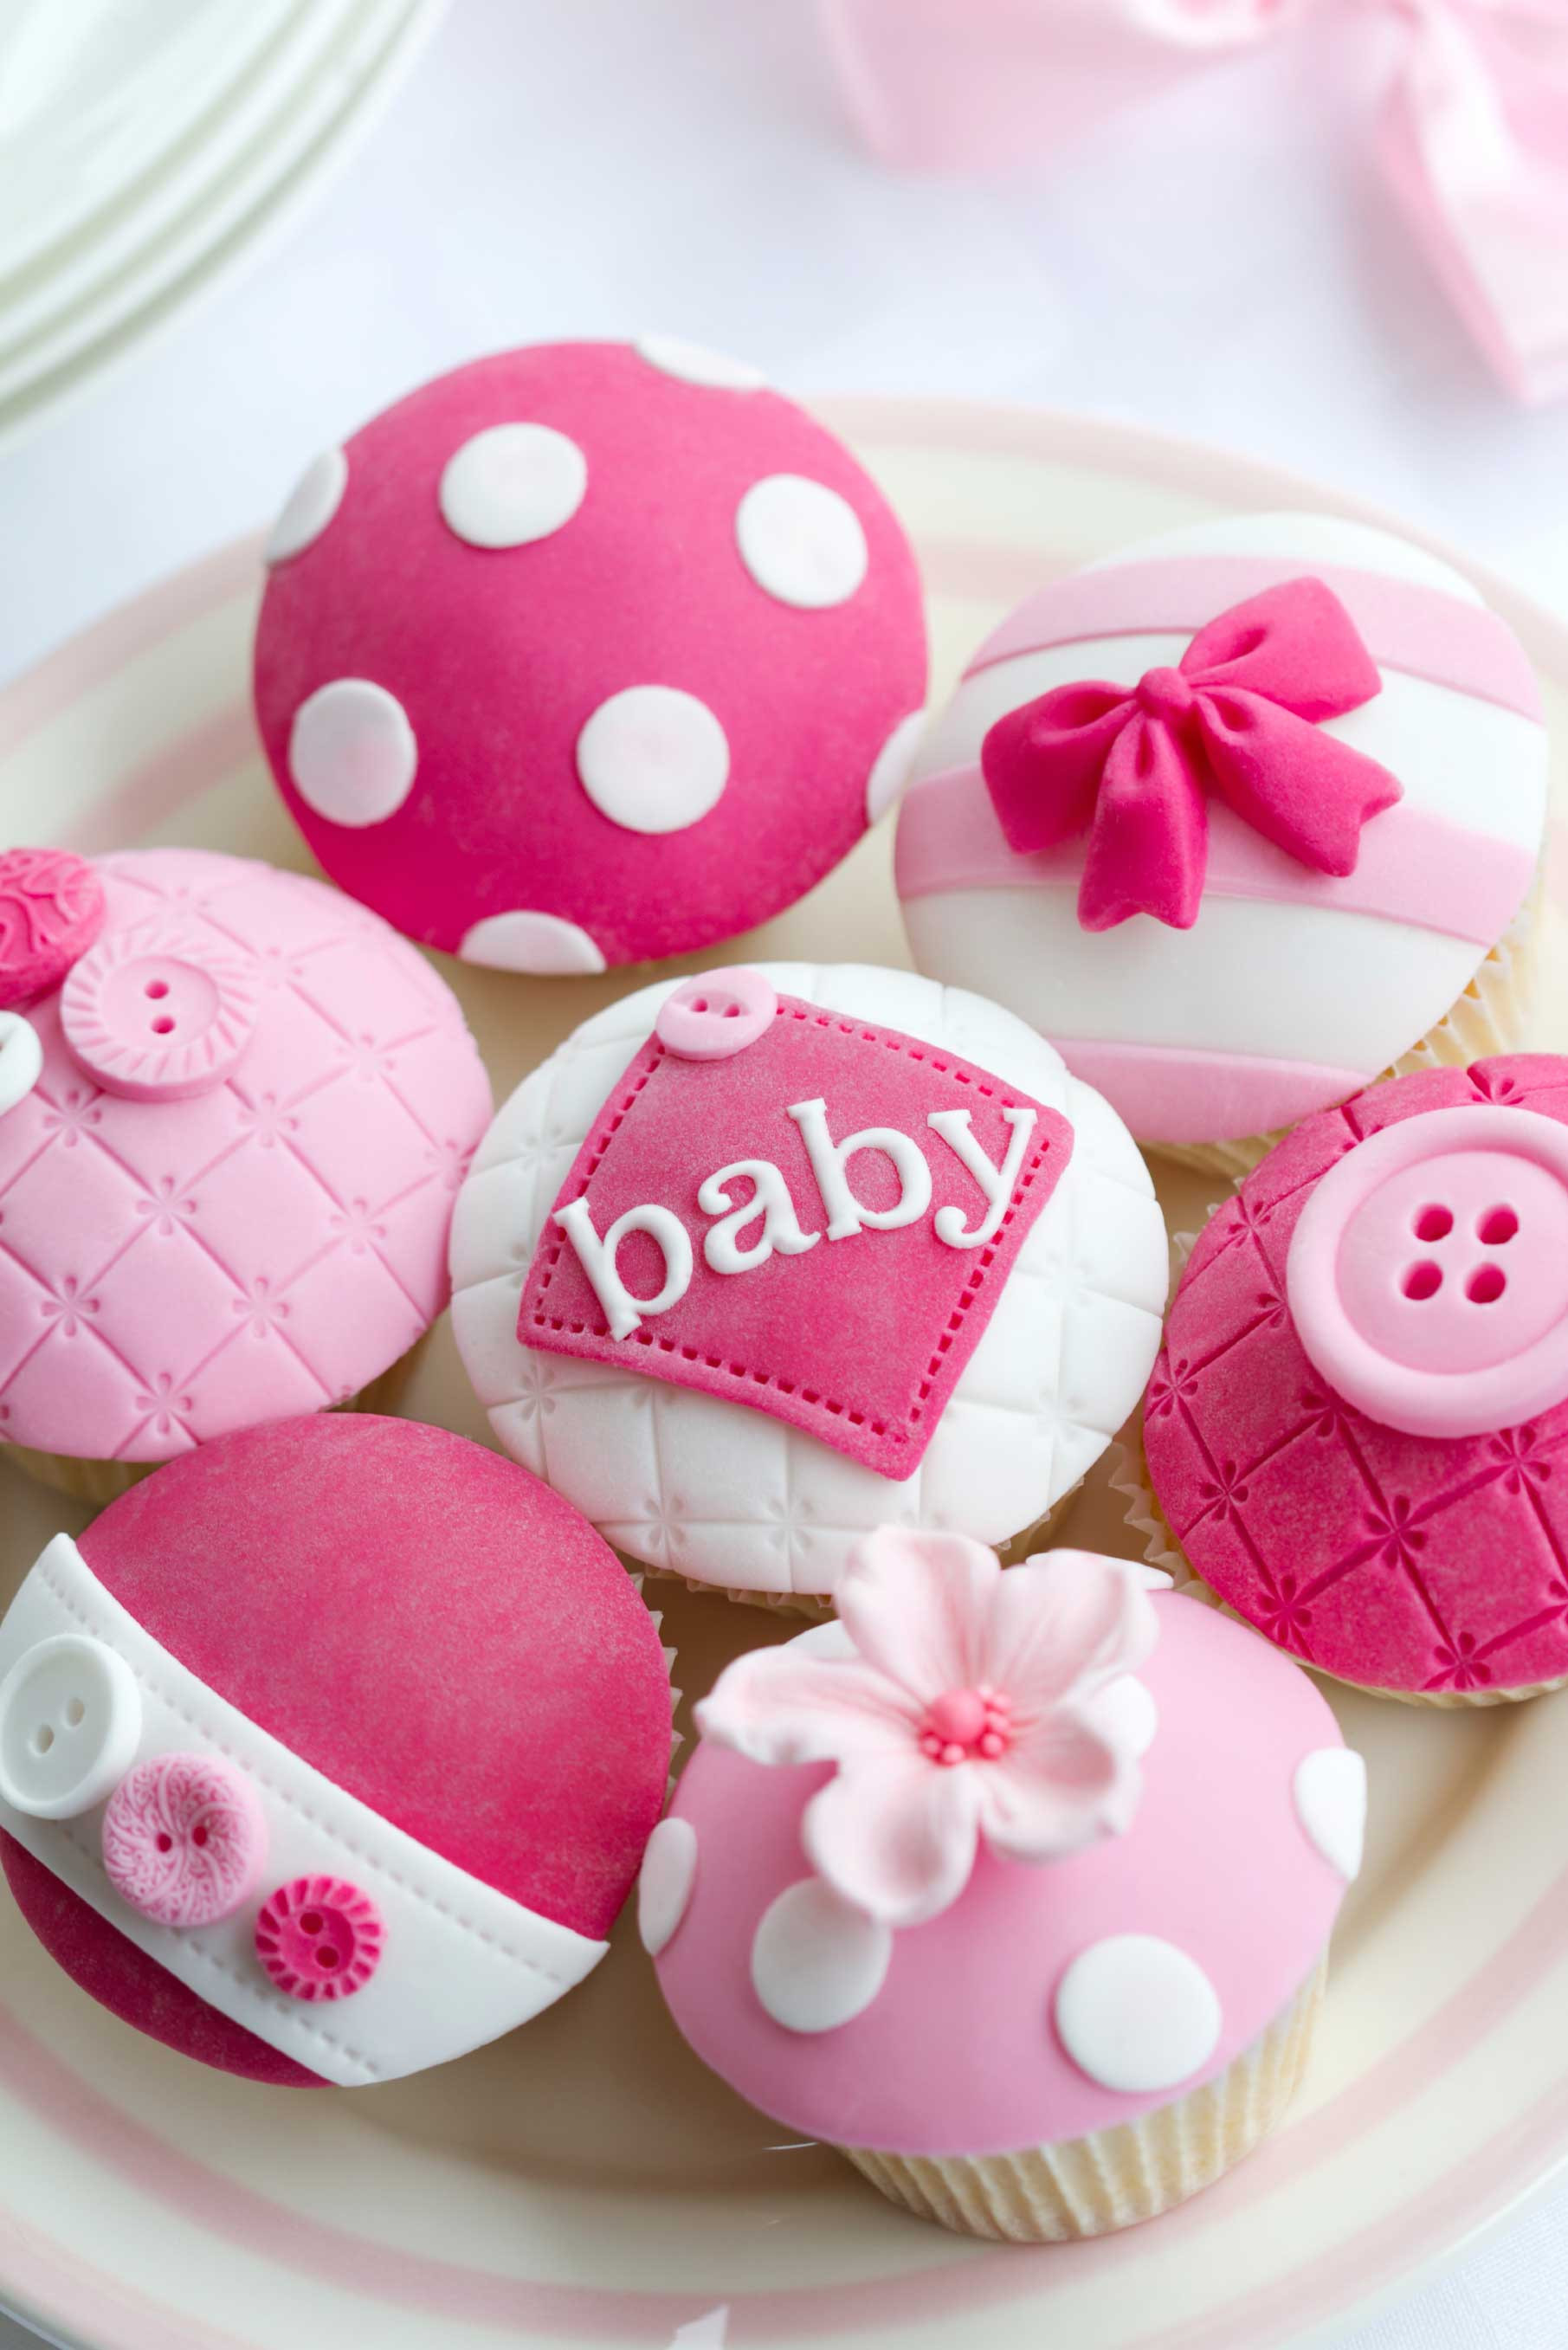 Baby Shower Cupcakes  Baby Shower Cakes Gallery Pink Frosting Parties Team